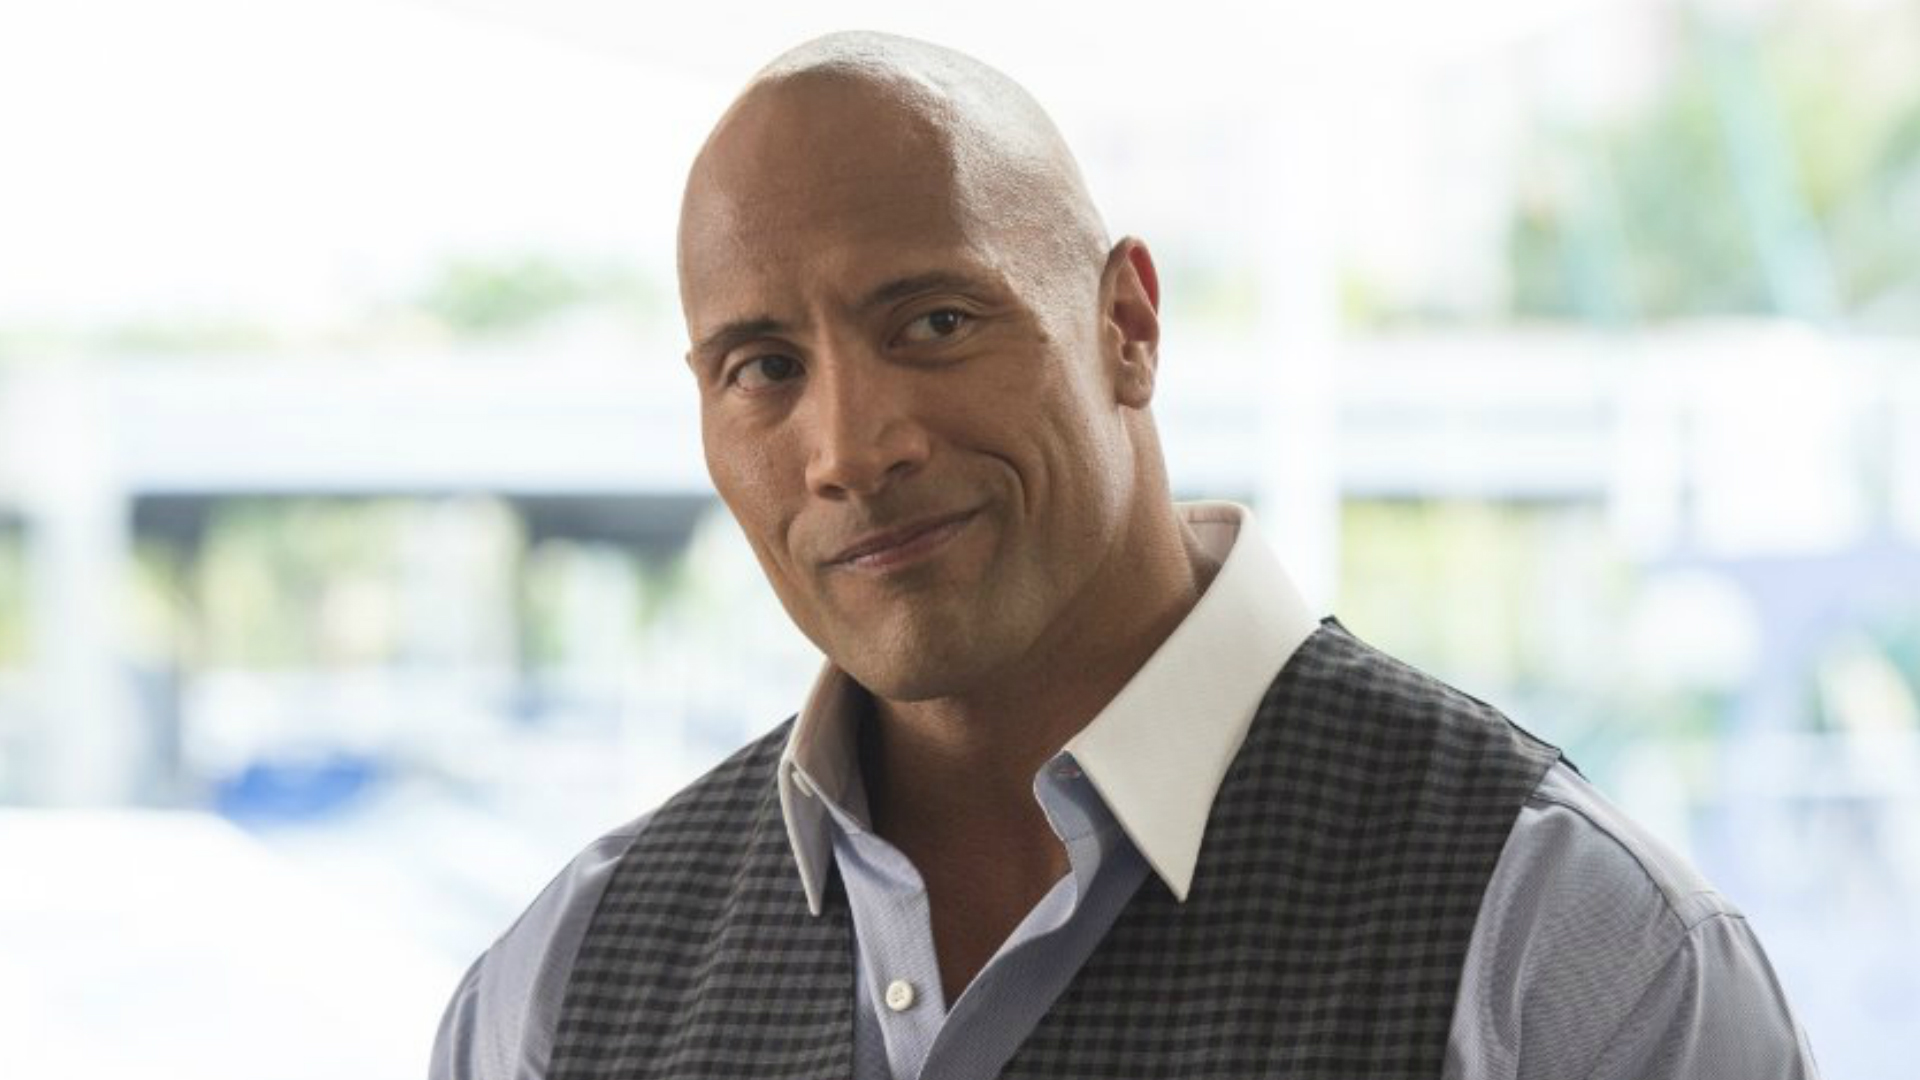 The Rock- aka Dwayne Johnson